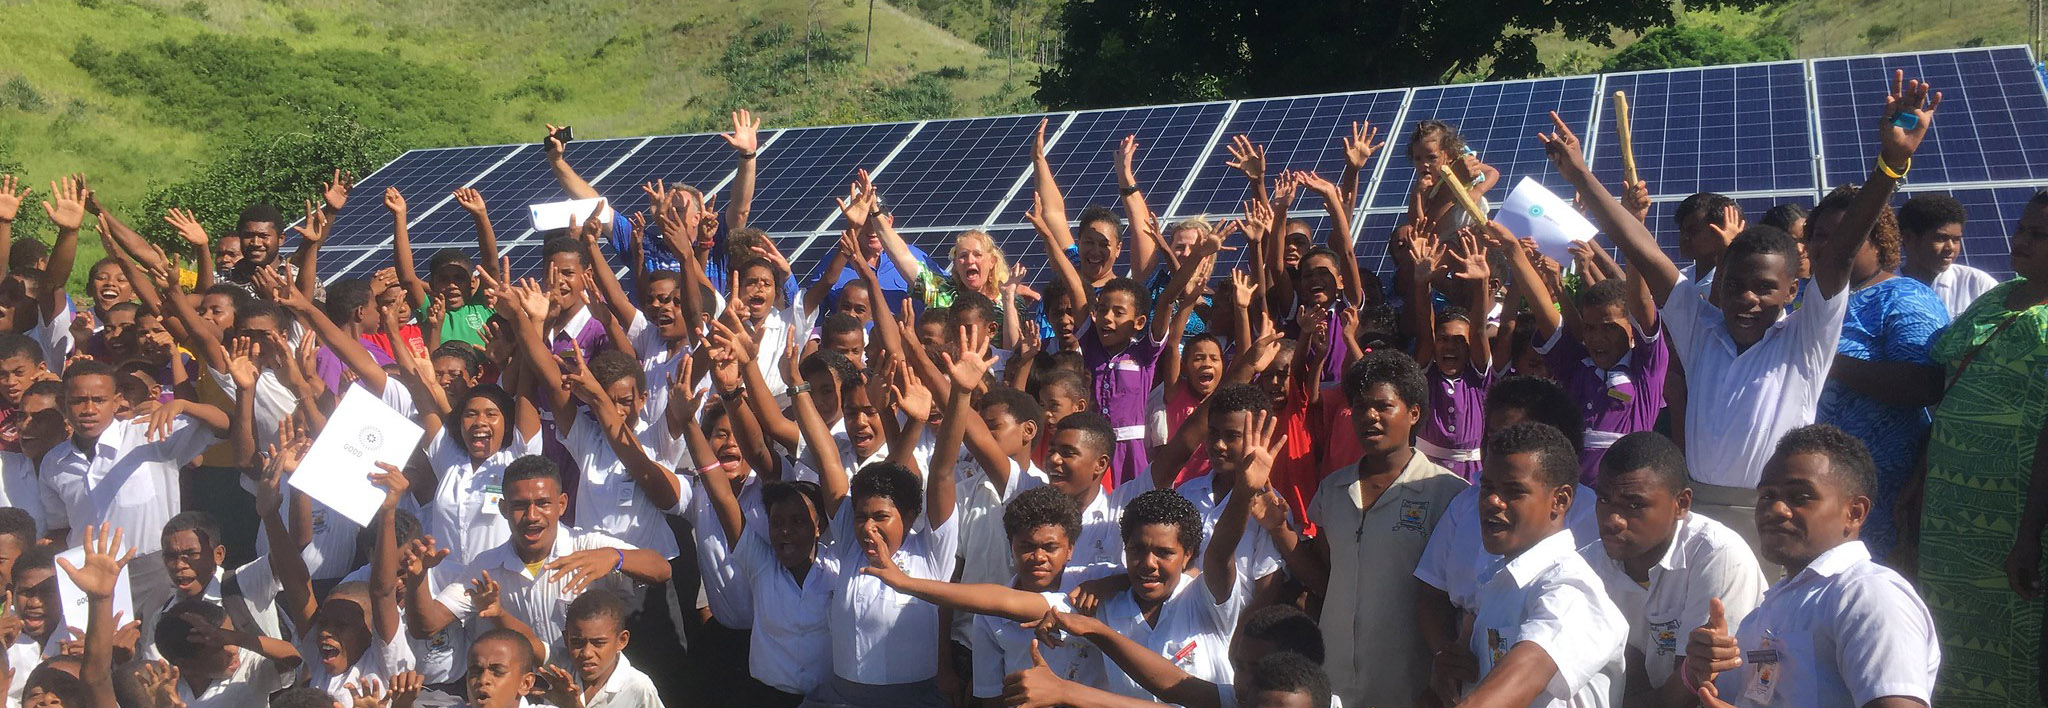 Clenergy-Time-Foundation-Fiji-Islands-3